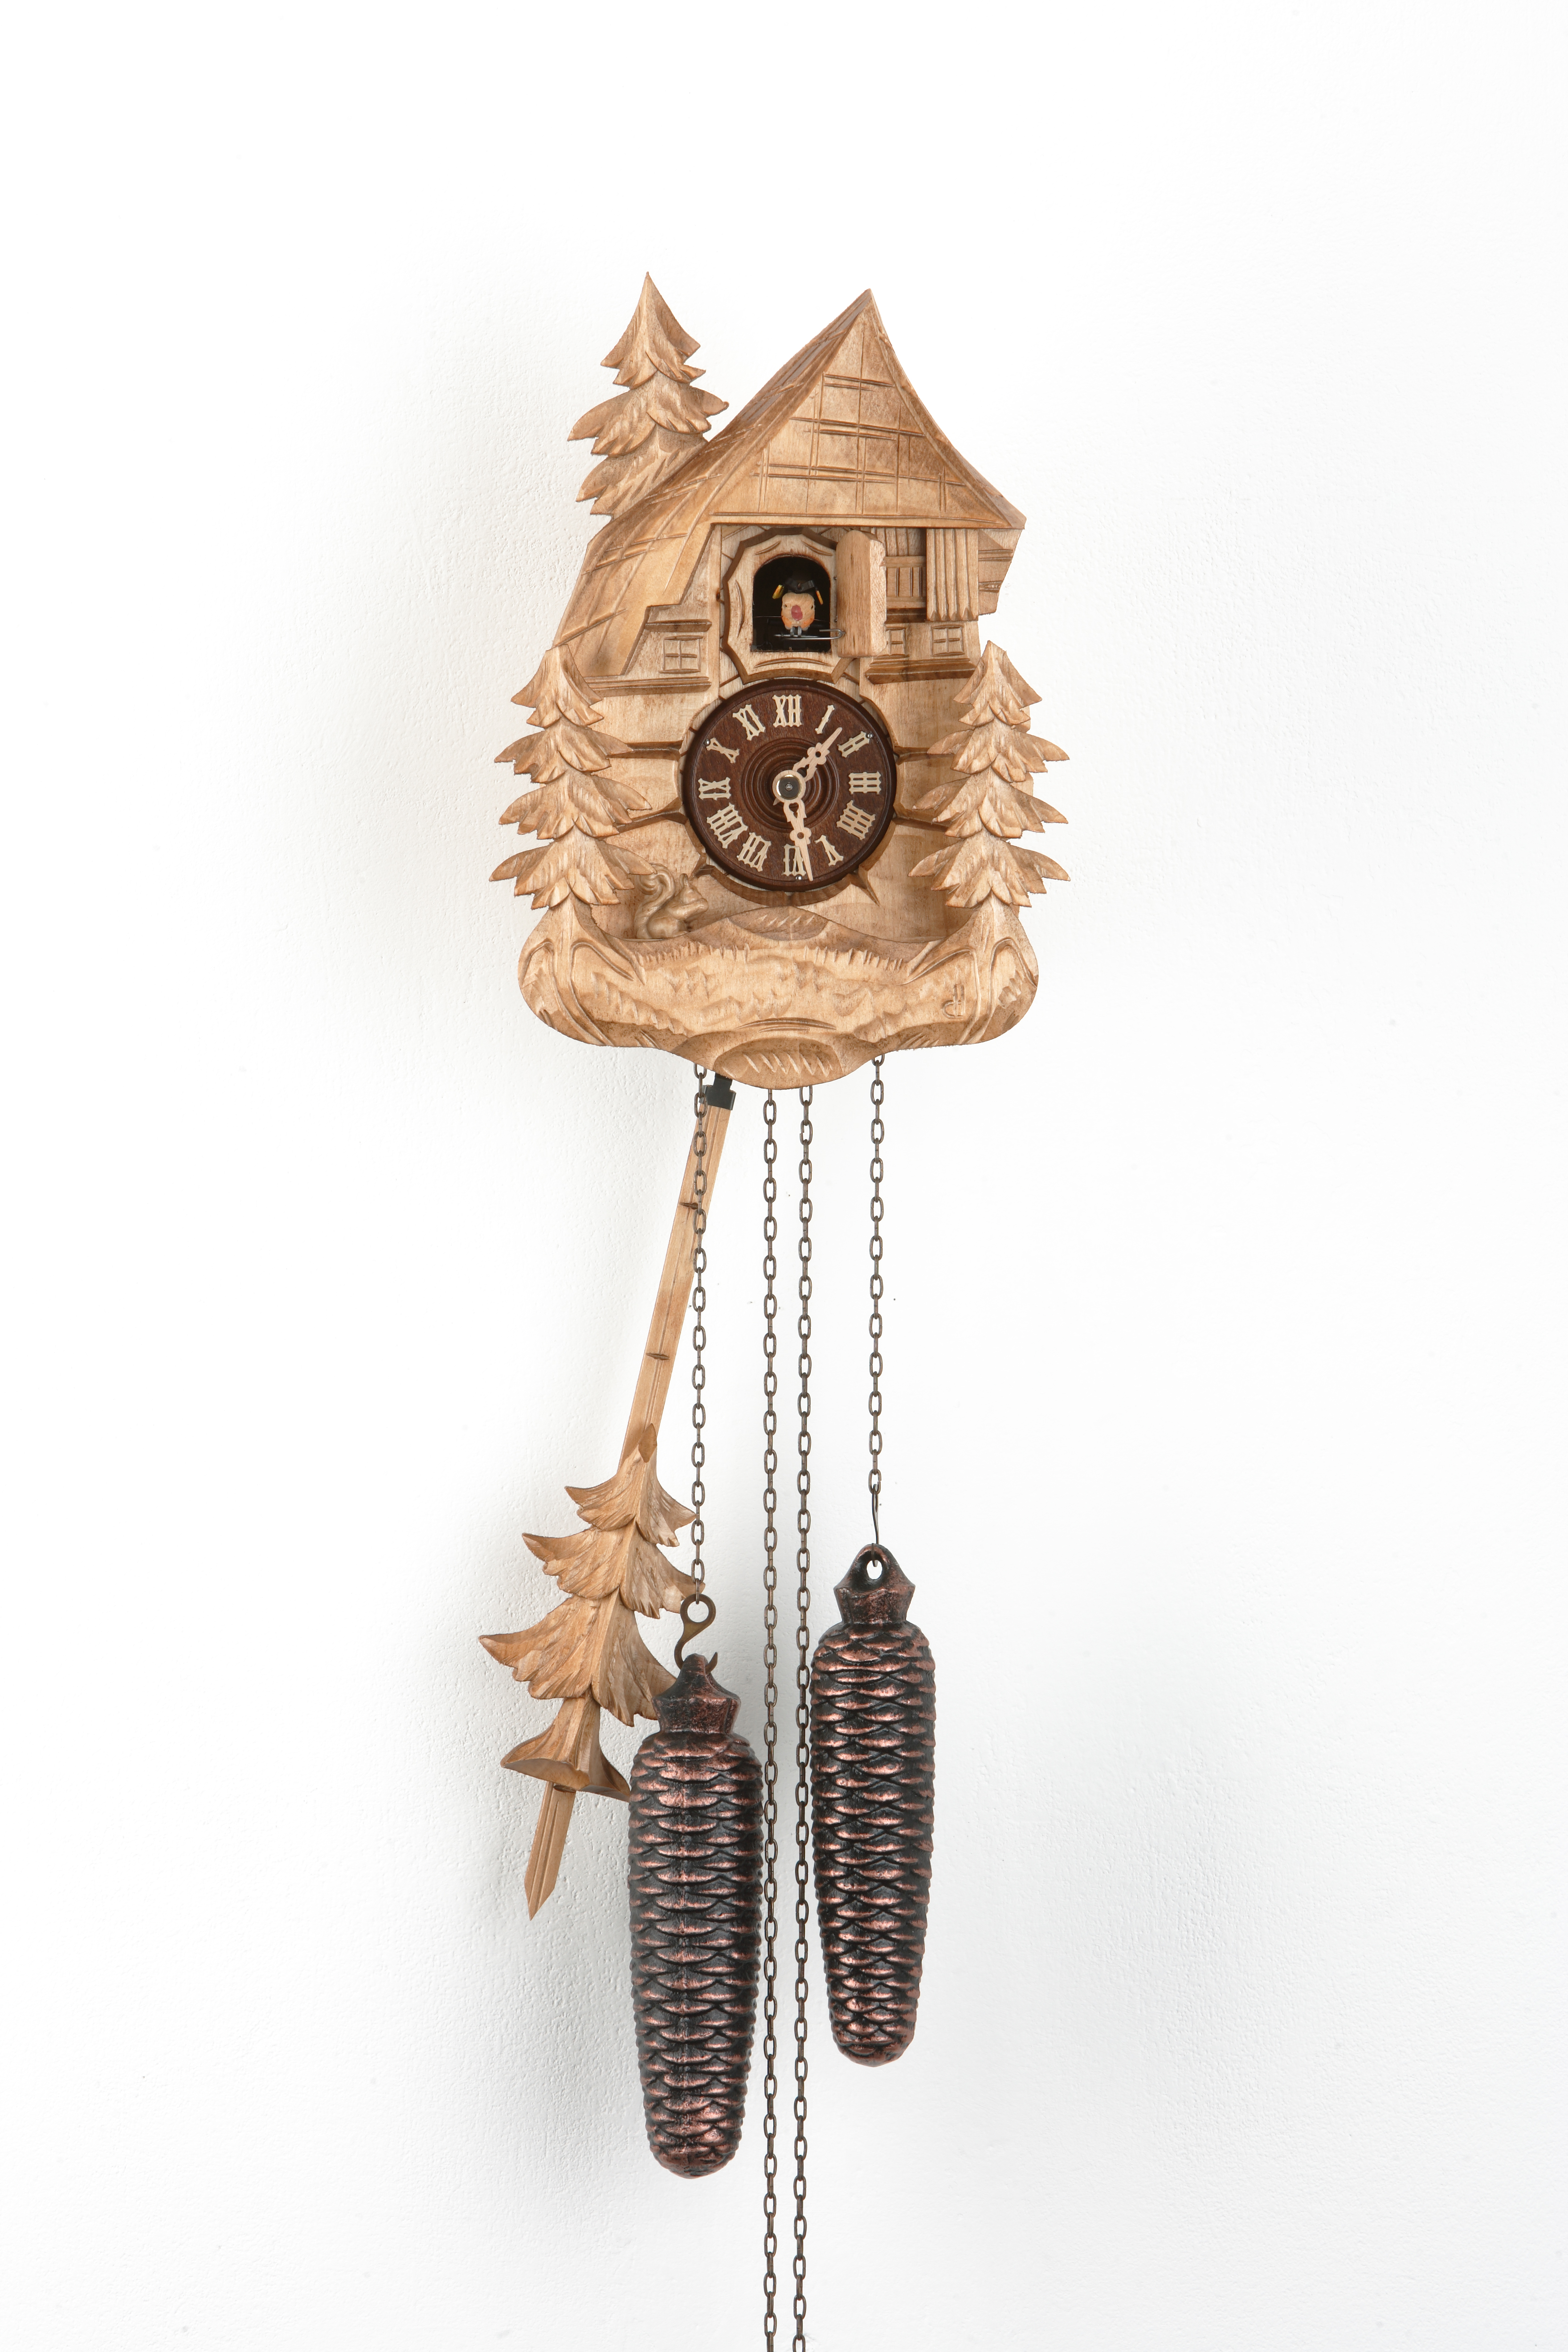 8 Days Cuckoo Clock Black Forest Farmhouse with squirrel